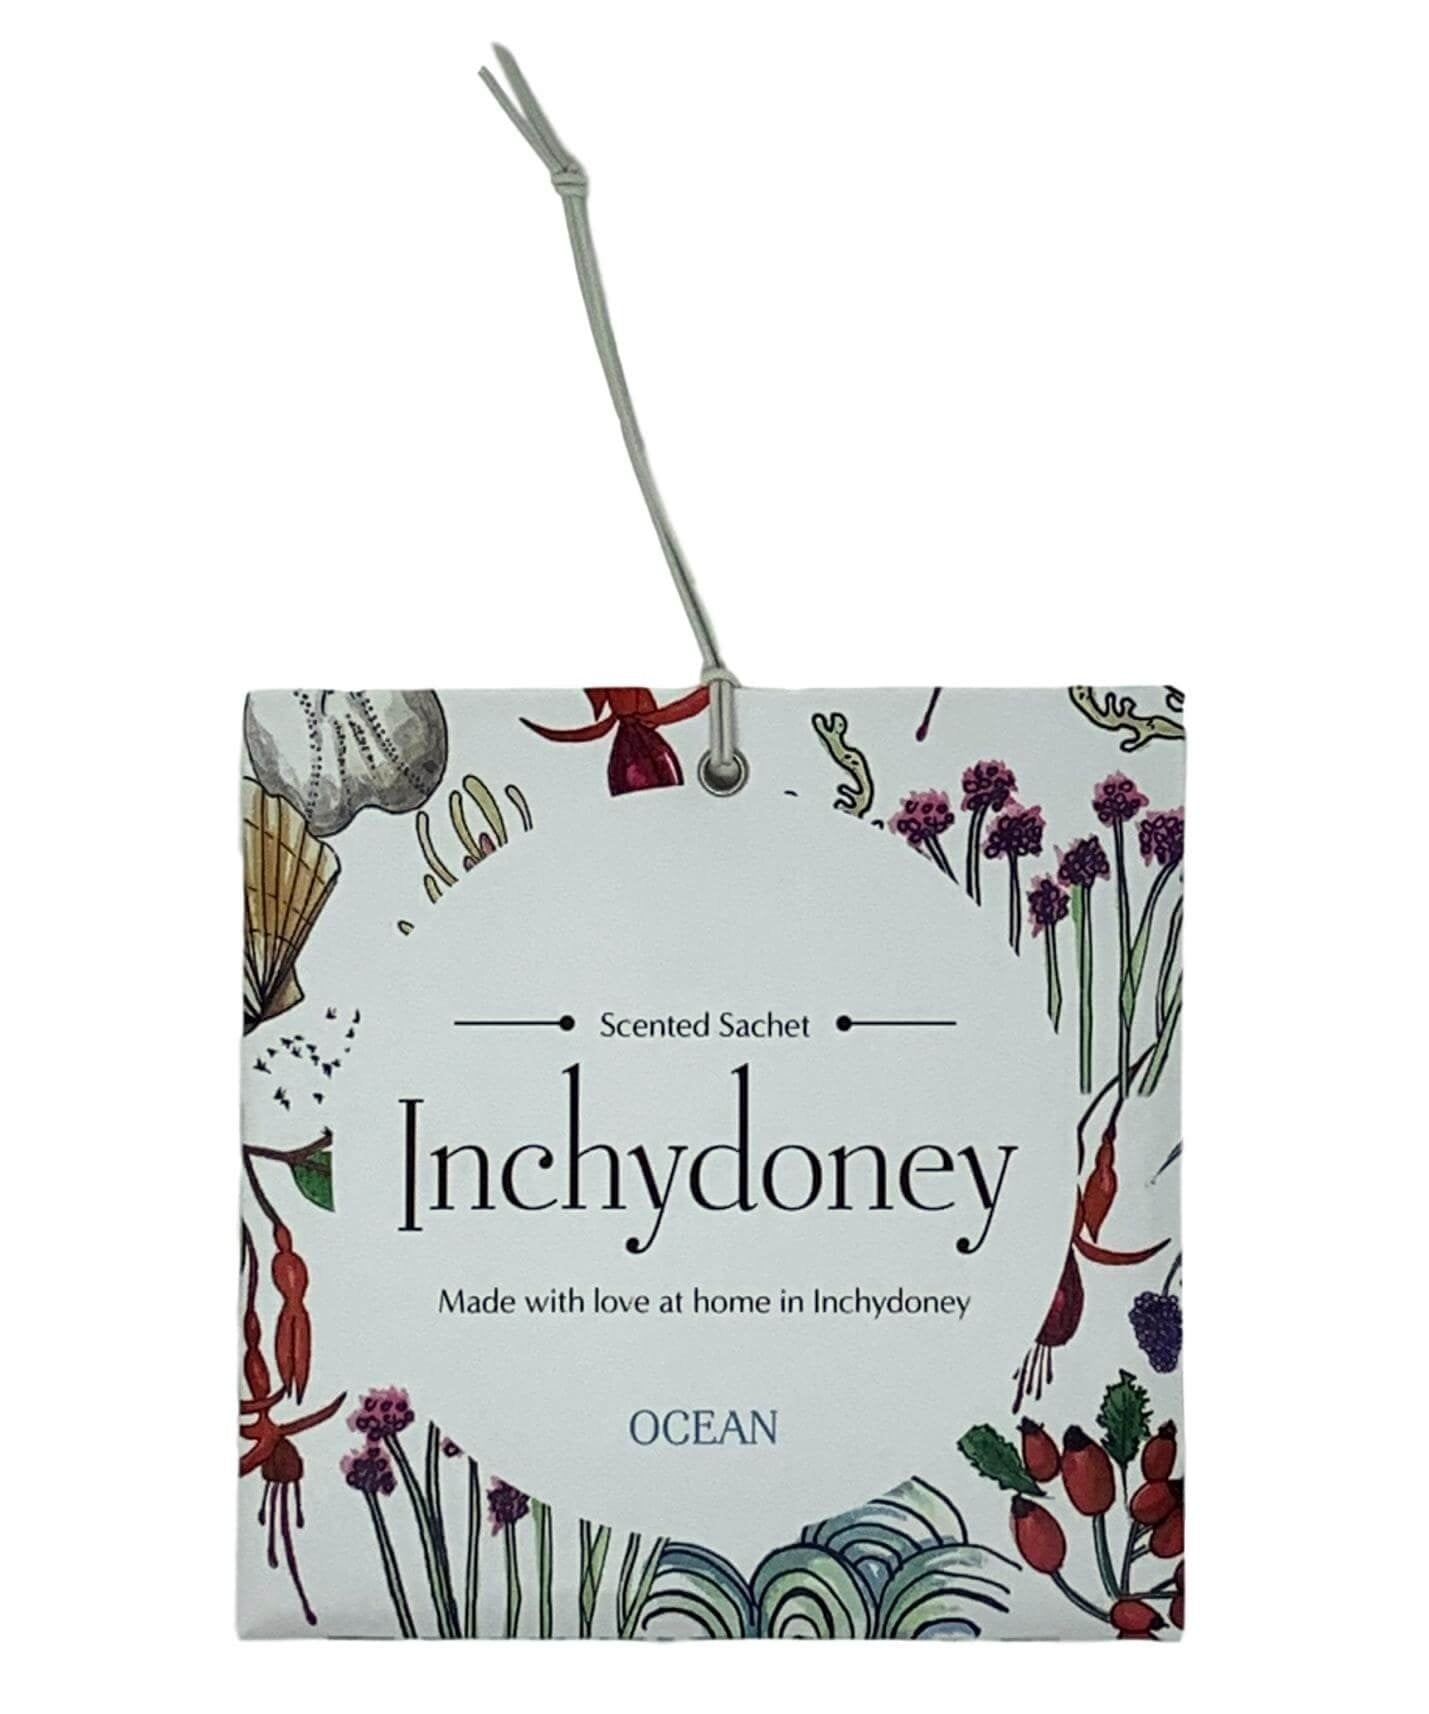 Scented Sachet - Ocean - [Inchydoney Candles] - Home Fragrance - Irish Gifts